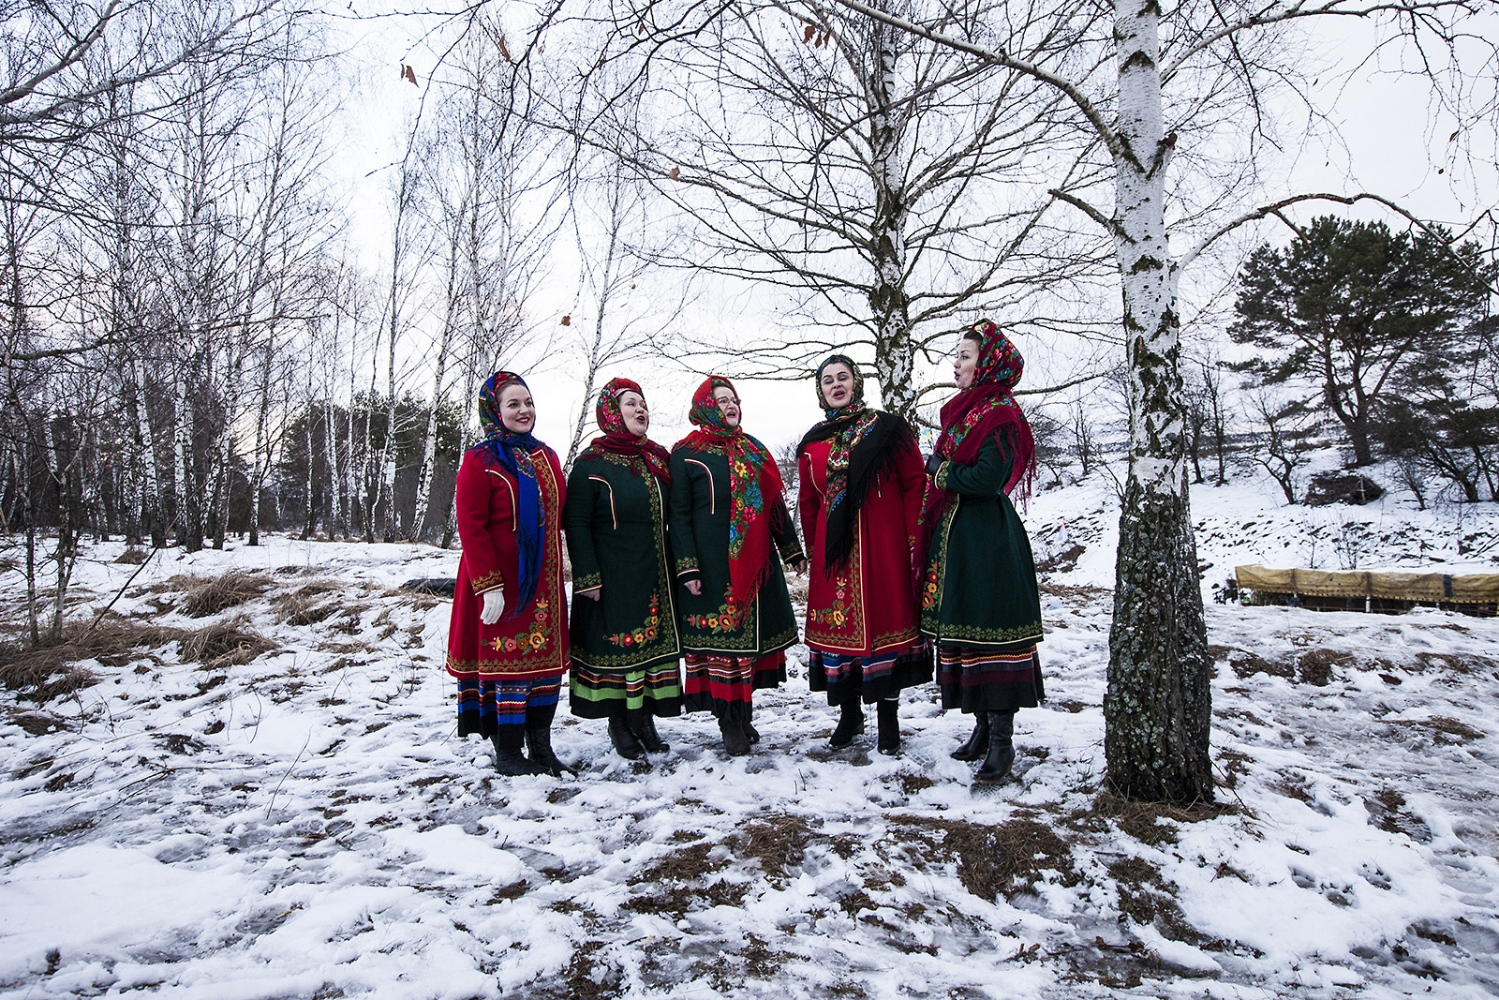 Kolyadki singers come to sing at the military camp to wish good luck to guys who're living there and that will leave soon to fight in the East.